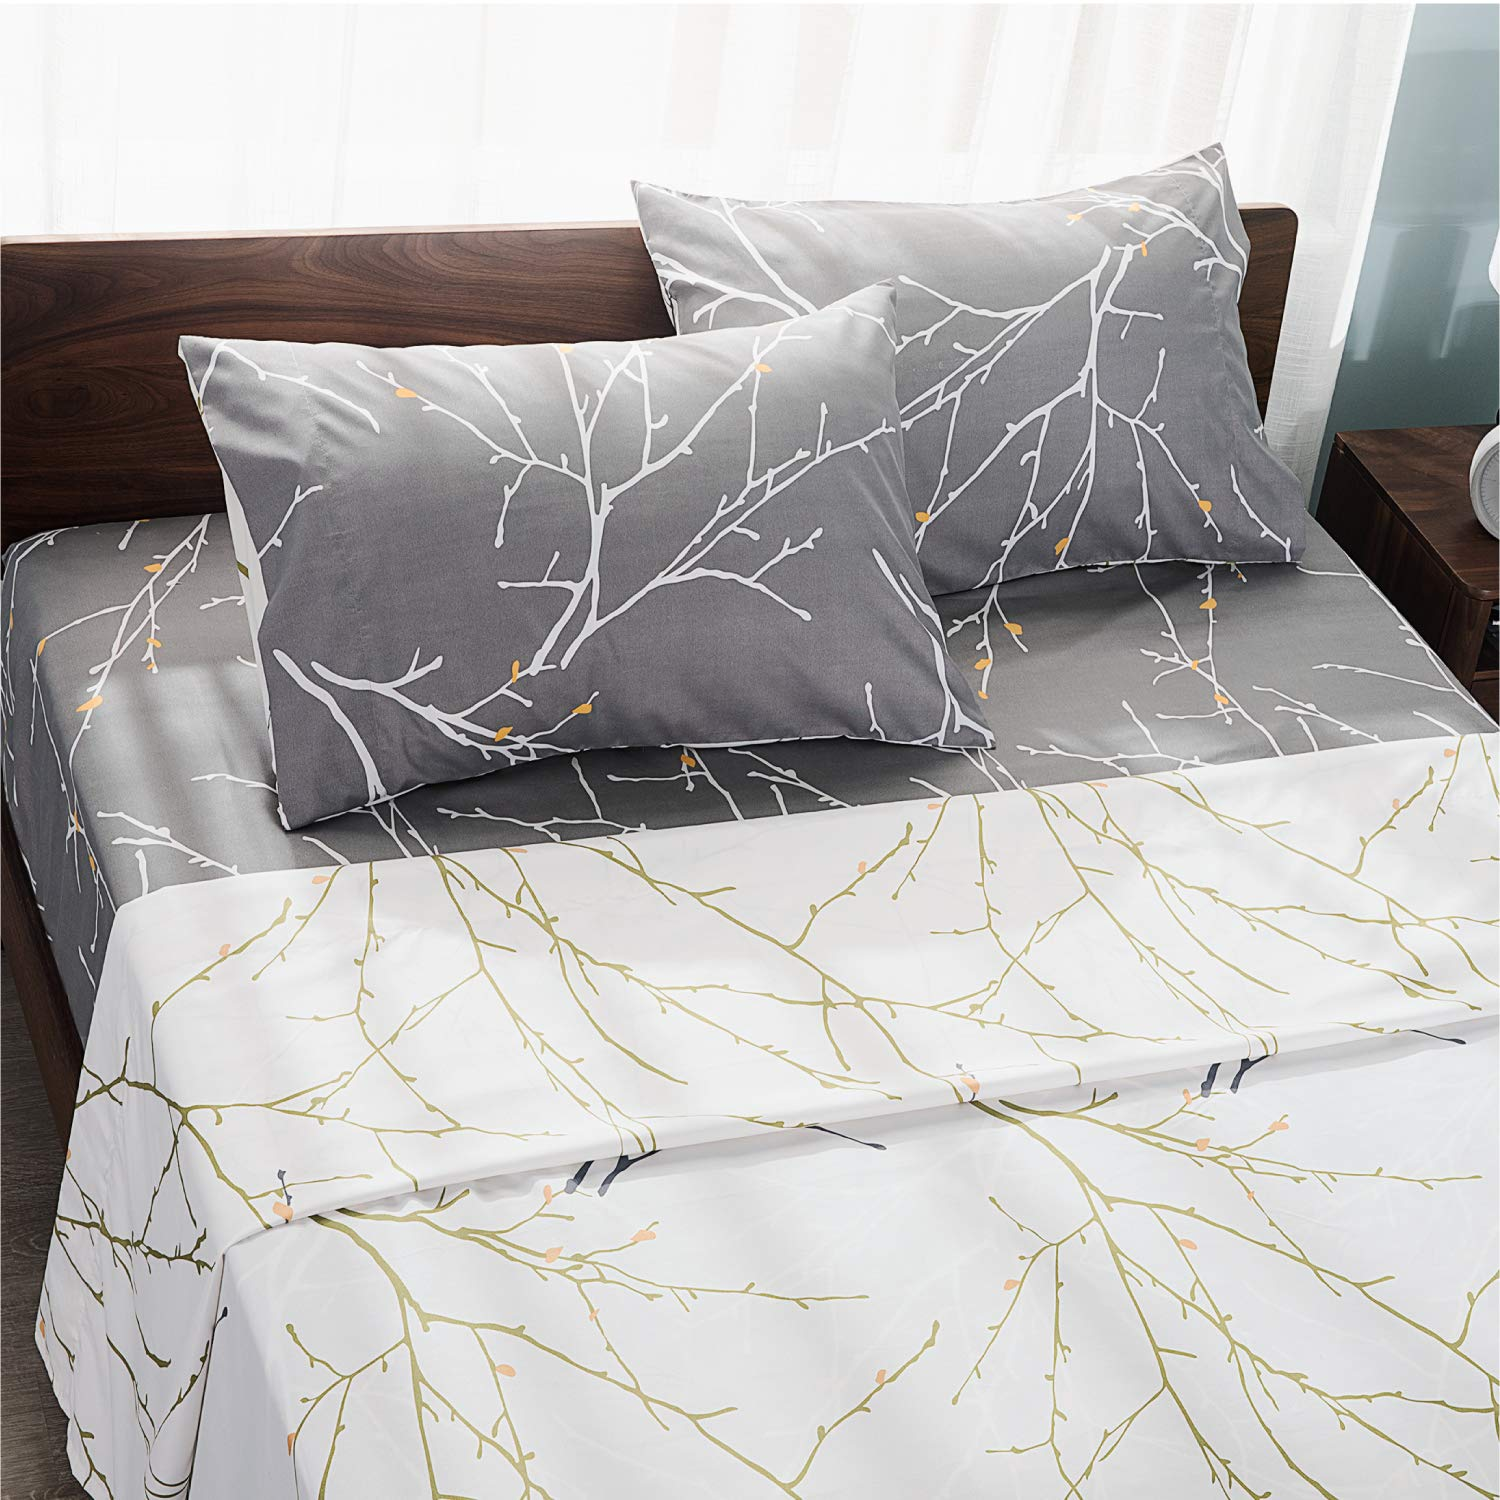 Bedsure Printed Bed Sheets Queen Size - Super Soft Brushed Microfiber, Tree Branch Patterned Sheets - 4-Pieces Sheet Set with 14-Inch Deep Pocket Fitted Sheet (Grey/Camel)